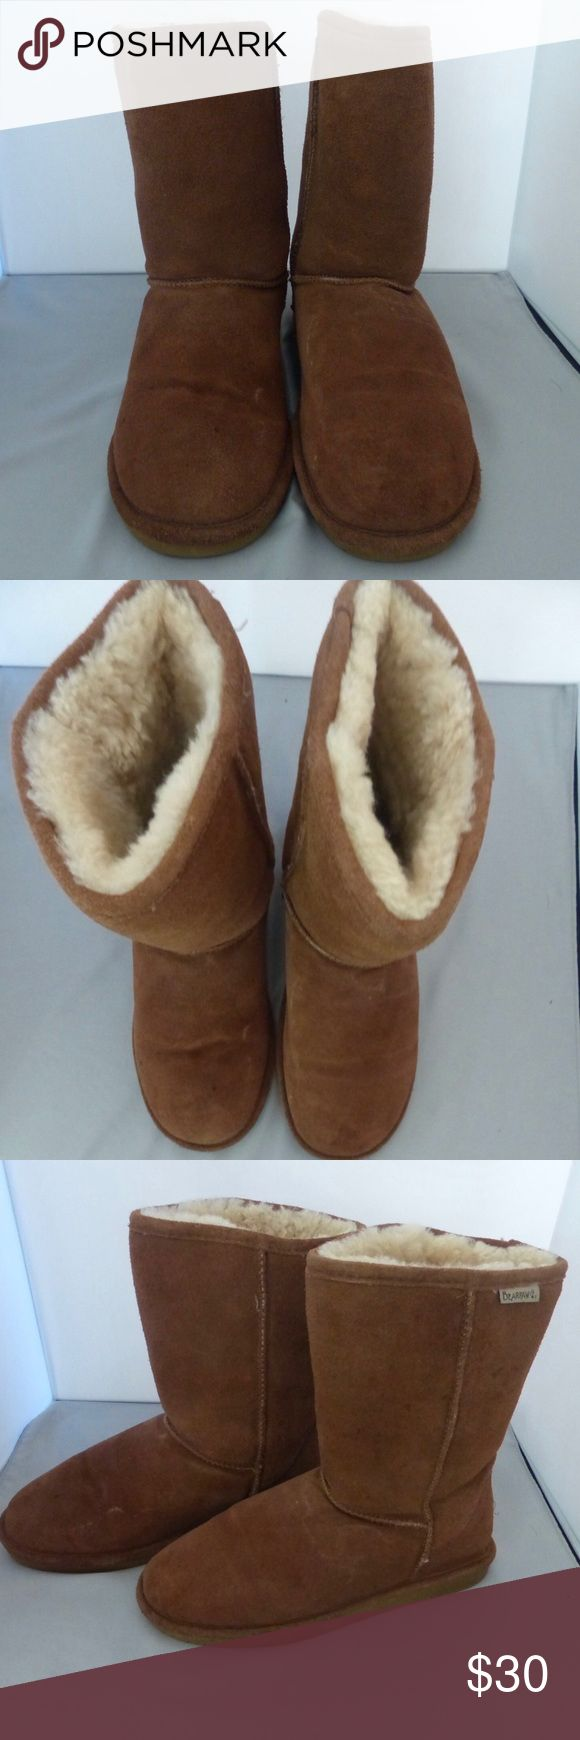 Bear Claw Emma Short Winter Boot Size 8 Bear Paw Emma Short Boot.  Brown Suede upper with seam-stitching detail Sheepskin lining, cushioning insole 8 inch shaft, 15 inch circumference Rubber traction outsole BearPaw Shoes Winter & Rain Boots